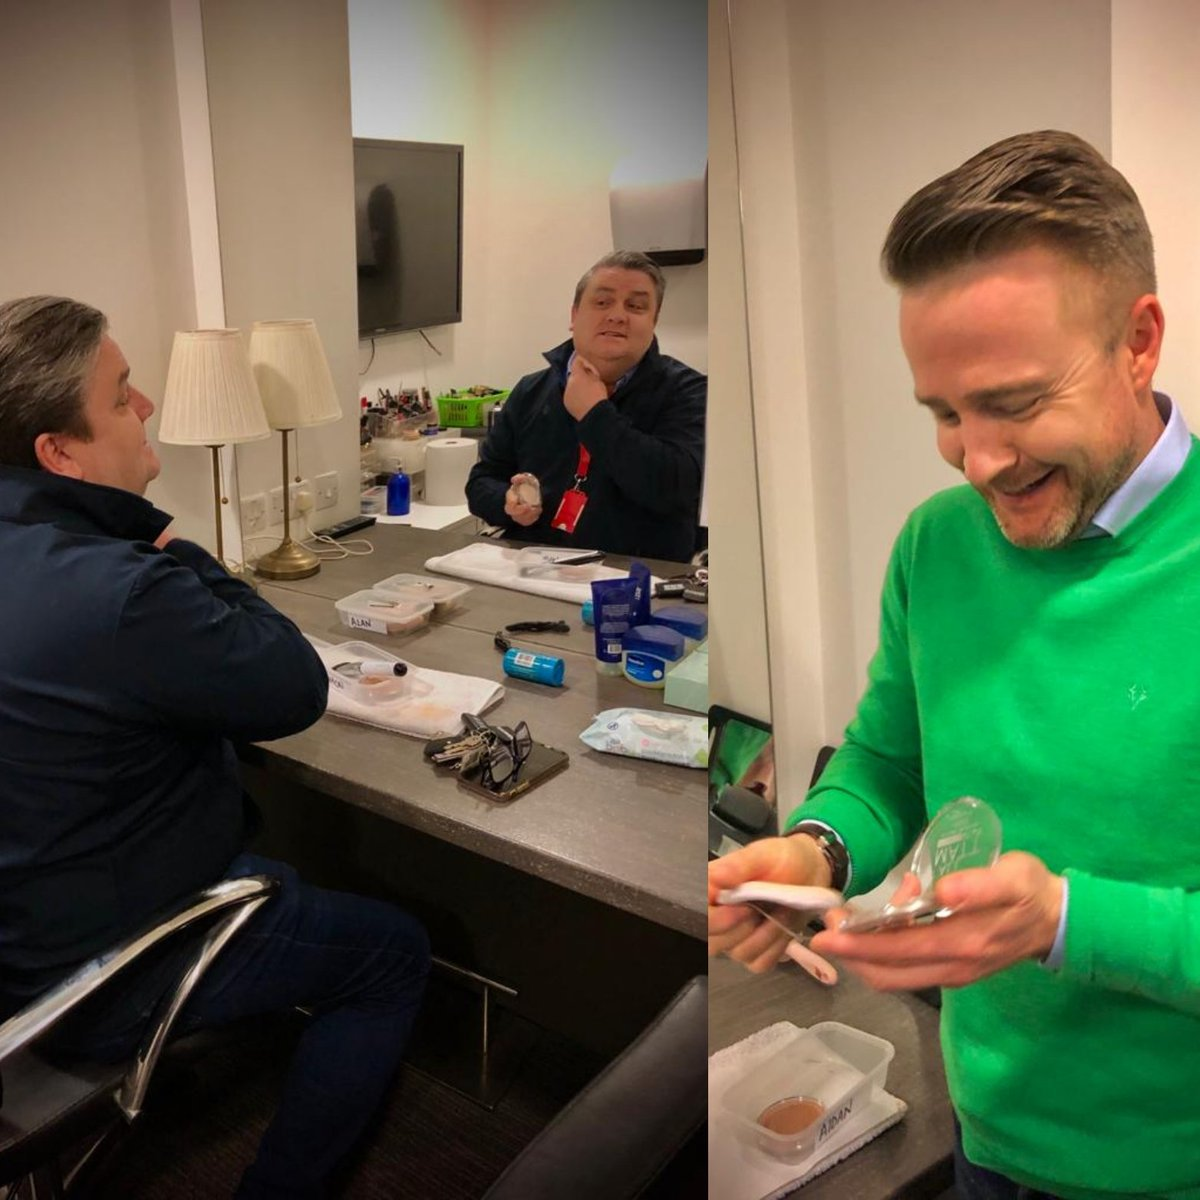 First time for everything in the @IrelandAMVMTV studio. @SimonDelaneyEsq and @AidanPowerful are on makeup duty. Looking good lads 😉 https://t.co/UWrflkZ8Re